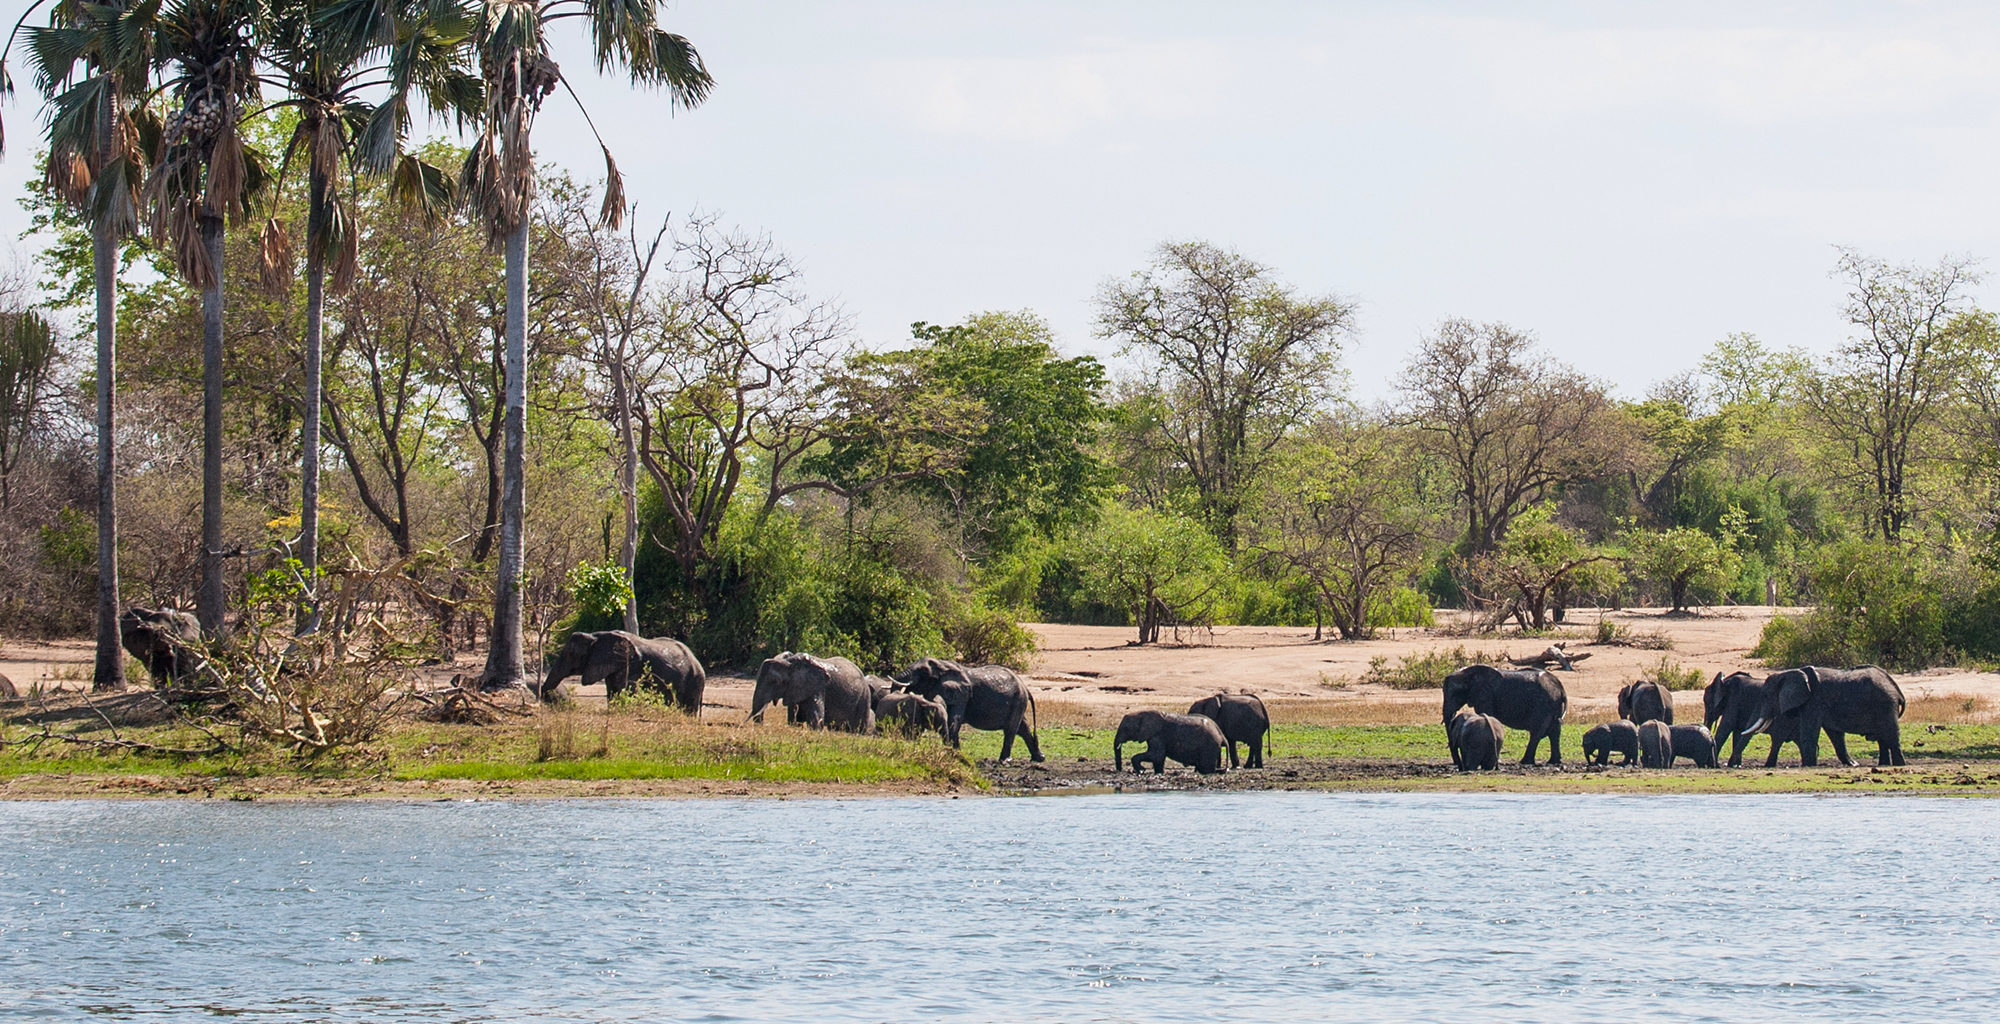 Malawi-Liwonde-National-Park-Elephants-by-River